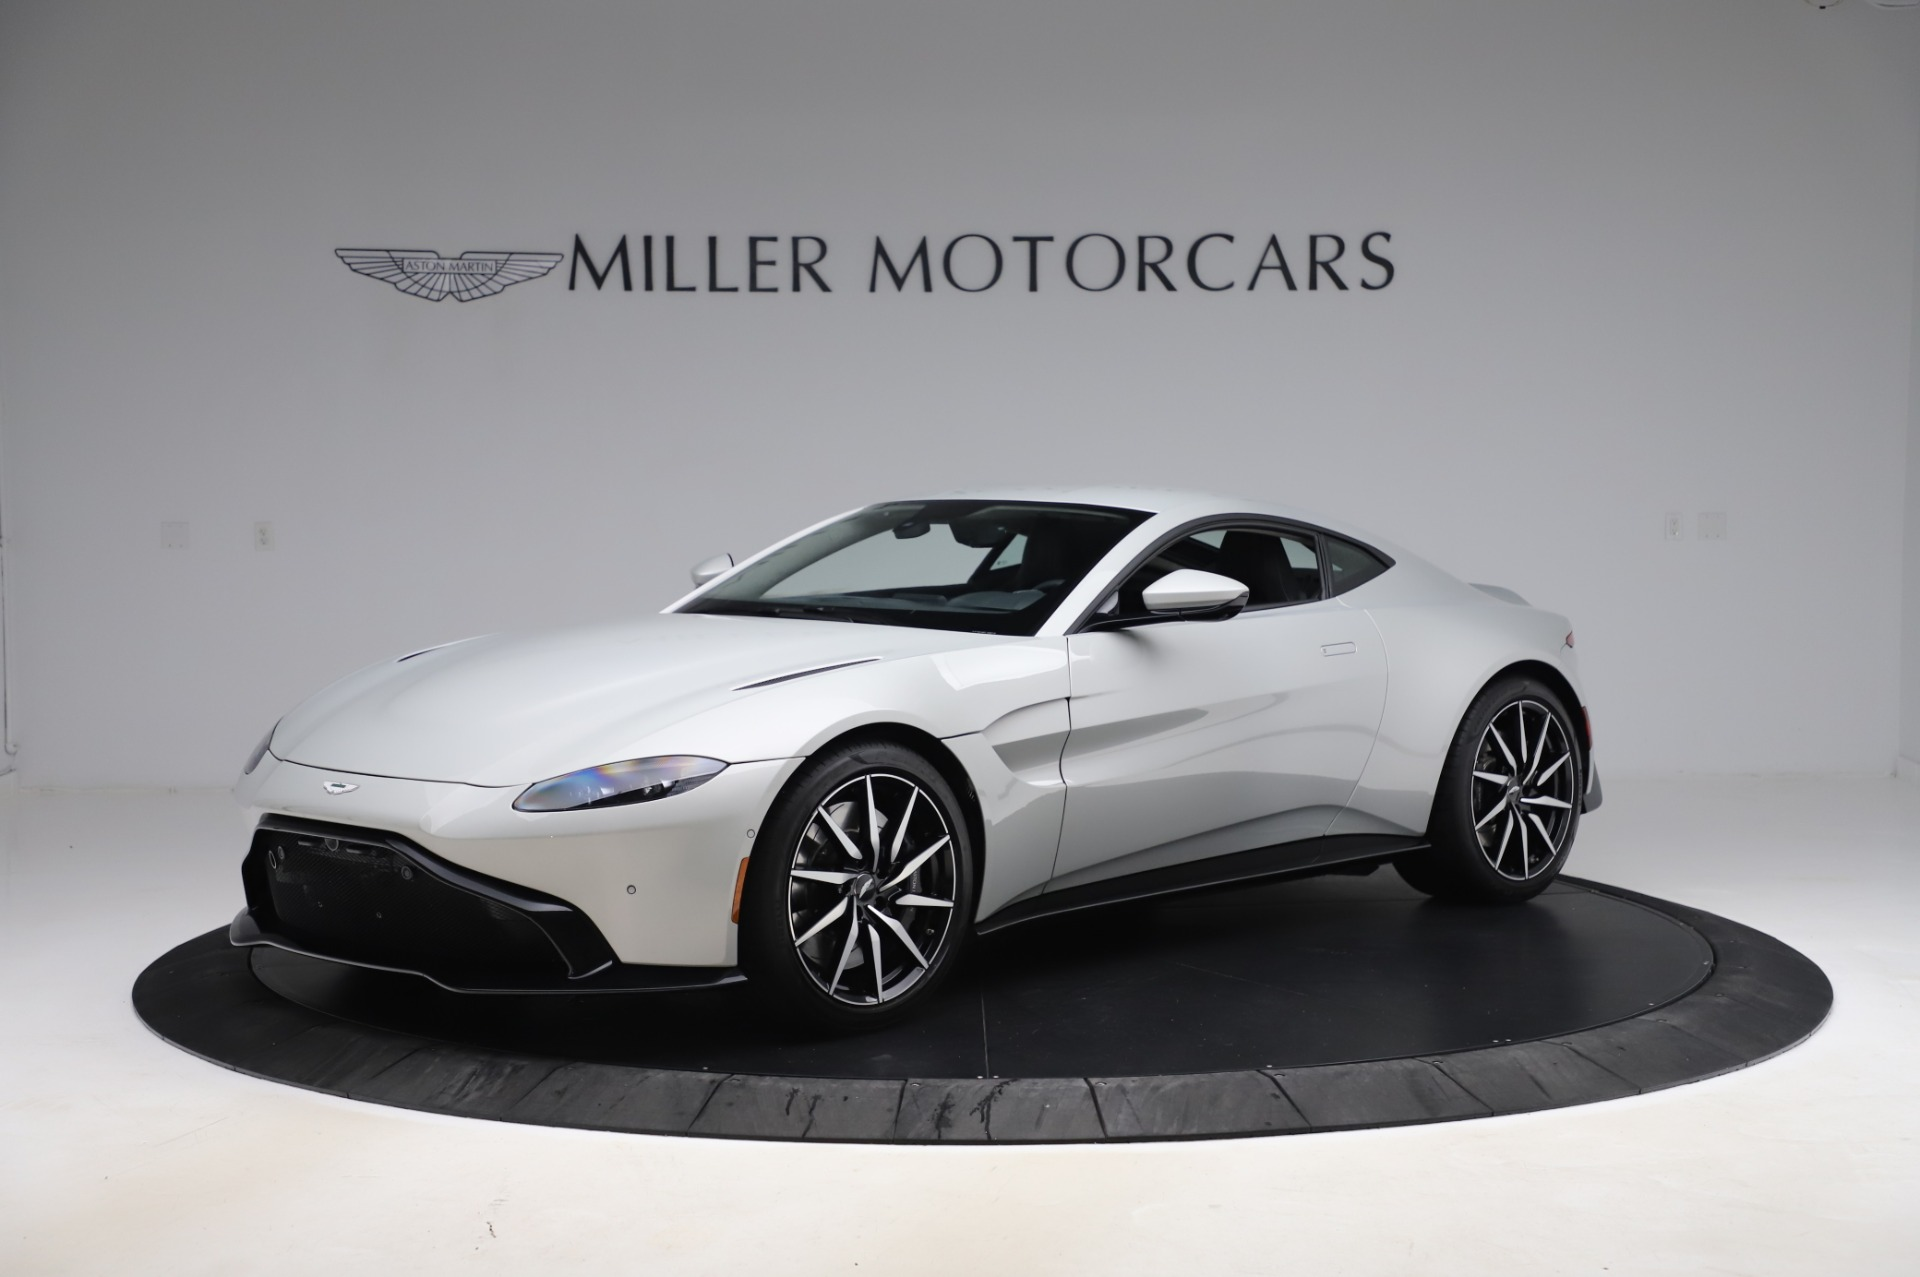 Used 2020 Aston Martin Vantage Coupe for sale $149,800 at Maserati of Westport in Westport CT 06880 1